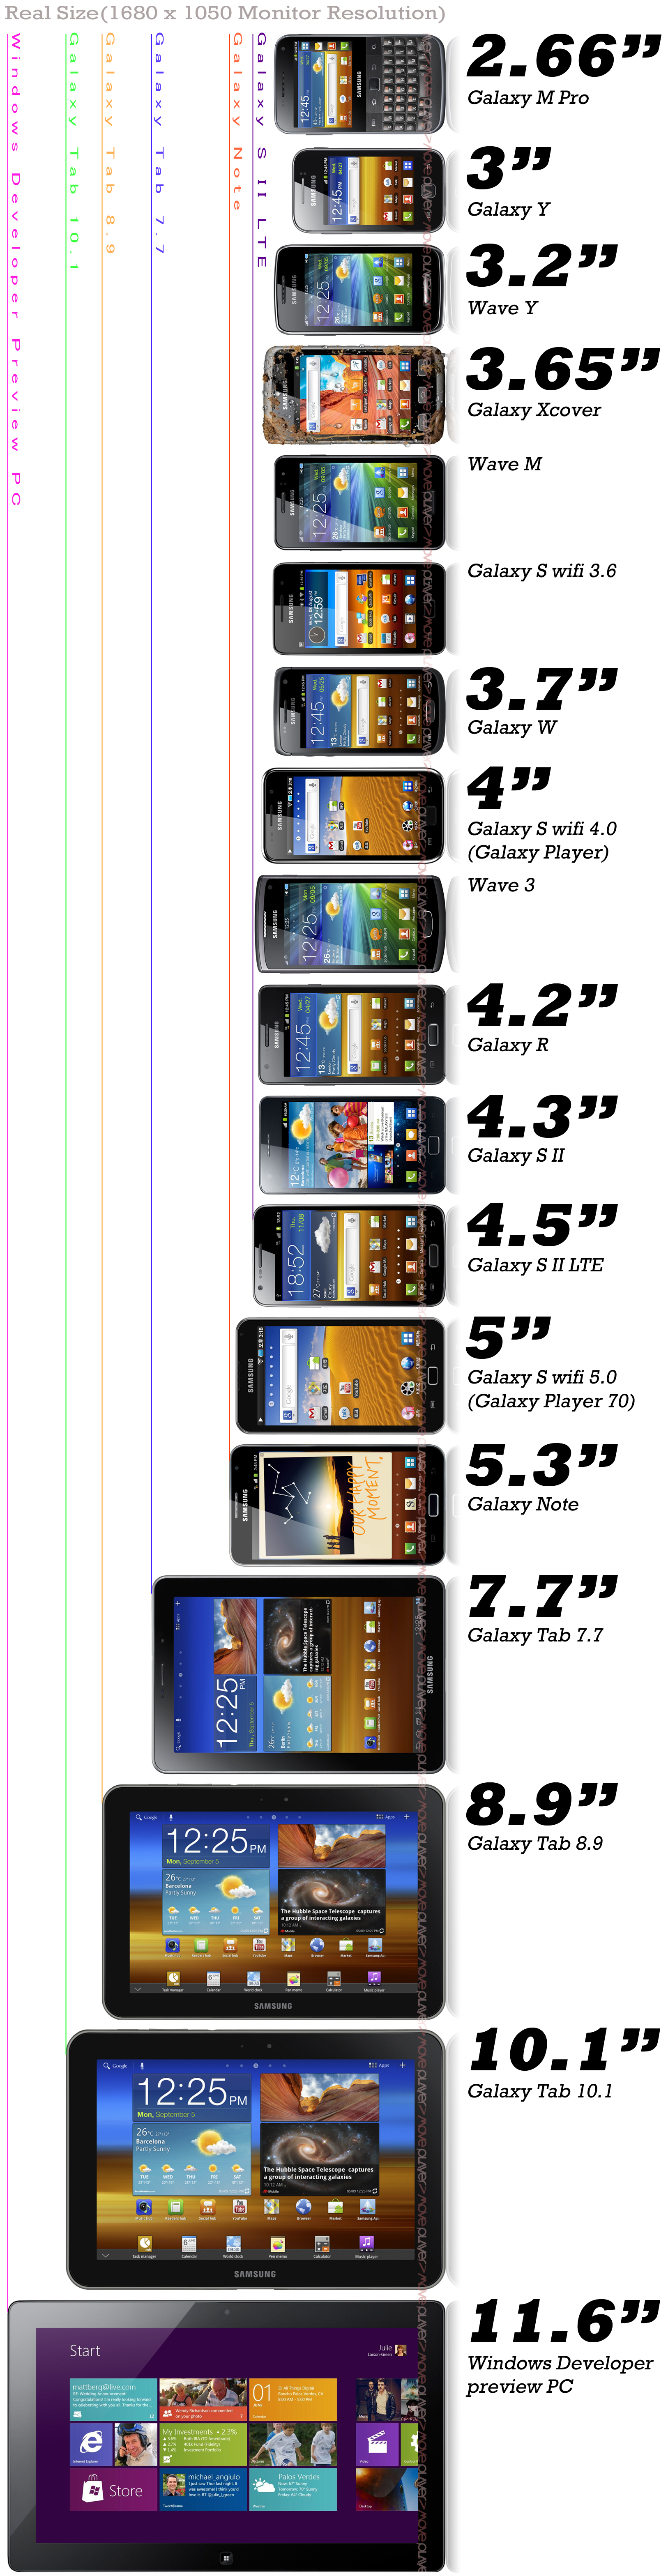 Samsung Device Size Guide And Rast Samsung Device Samsung Galaxy